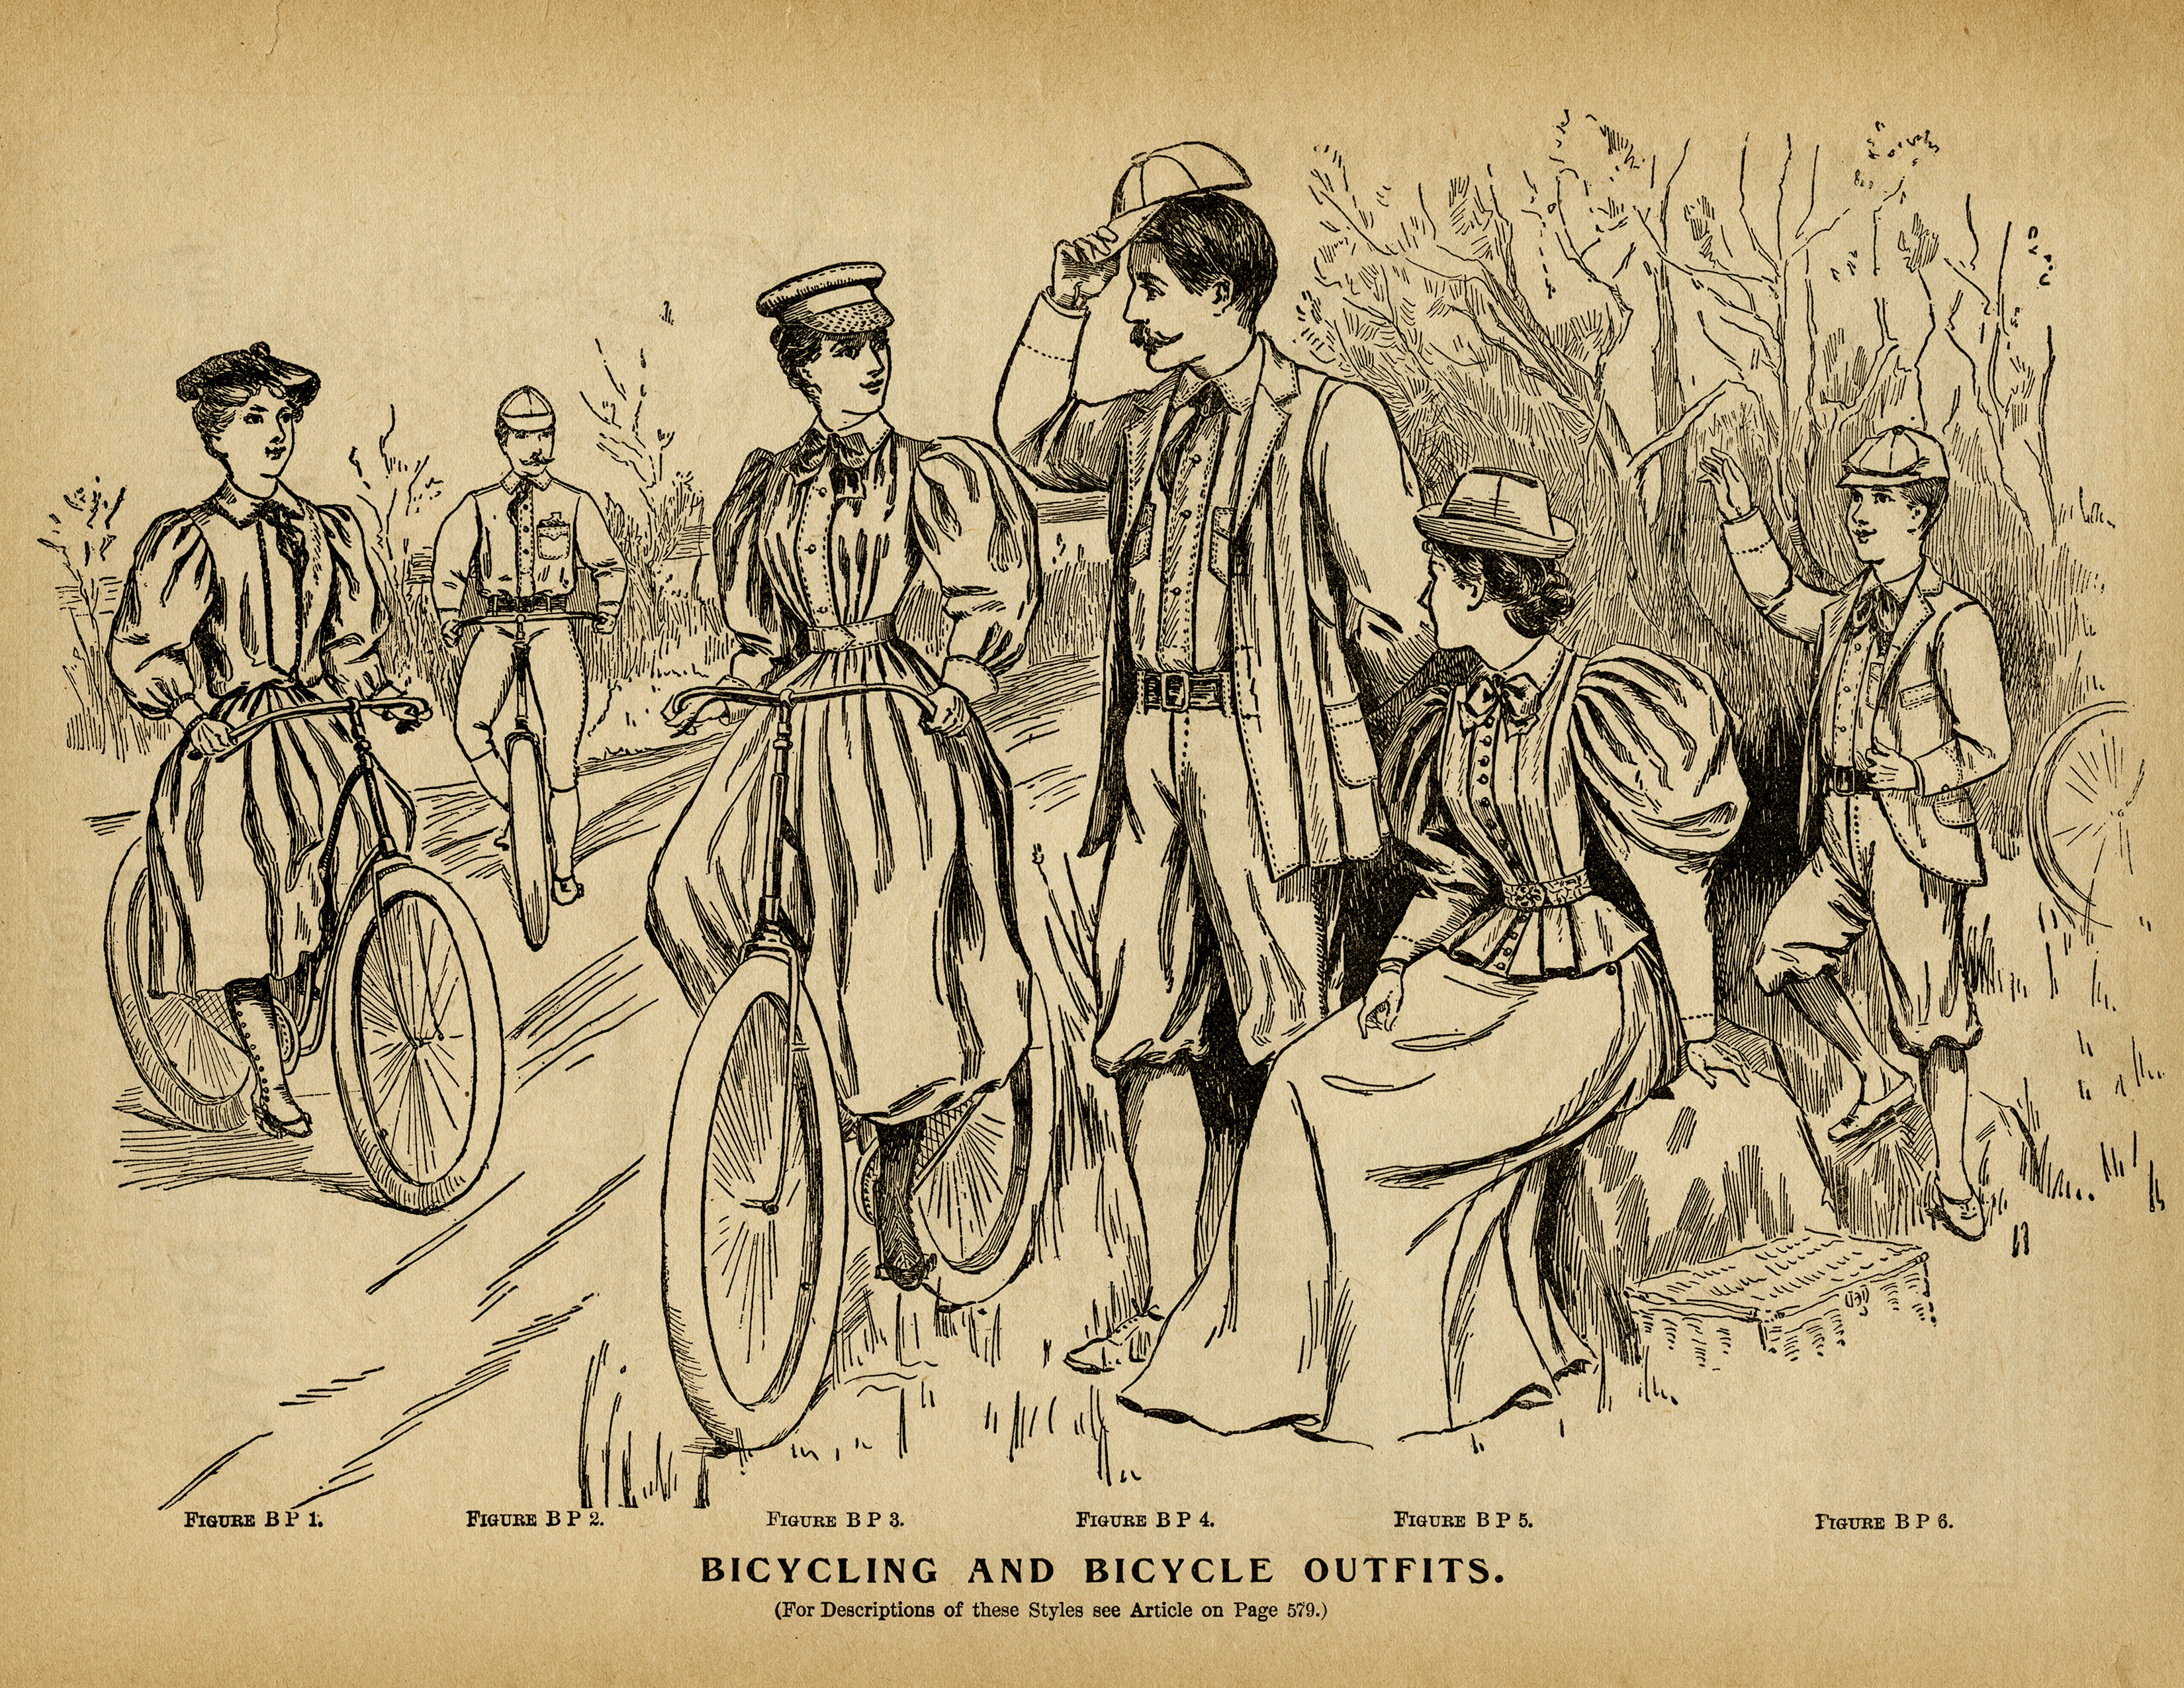 Bicycles and Bicycling Outfits 1895.